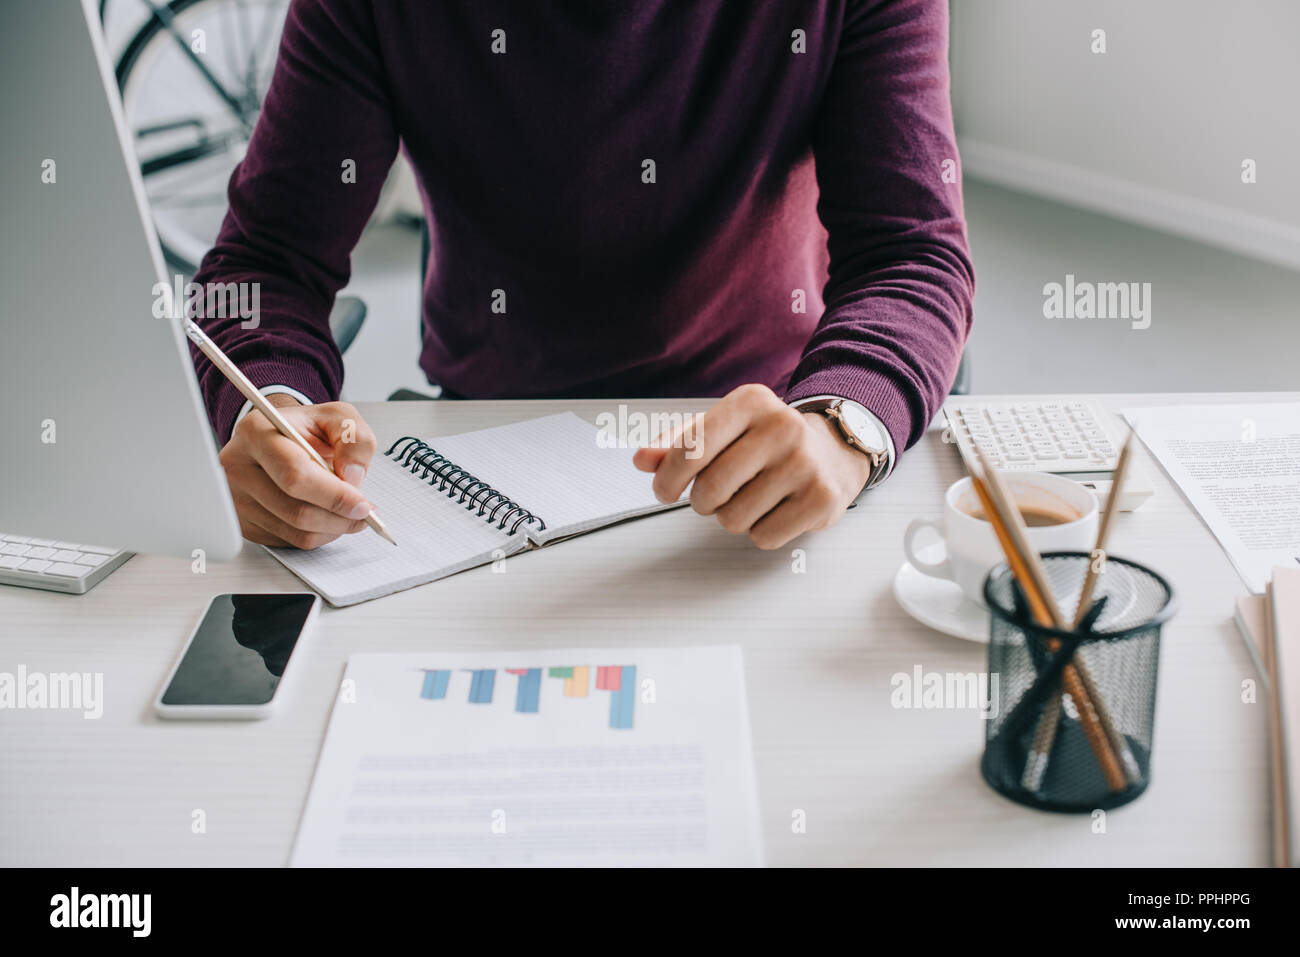 cropped image of designer in burgundy sweater writing something to notebook in office - Stock Image